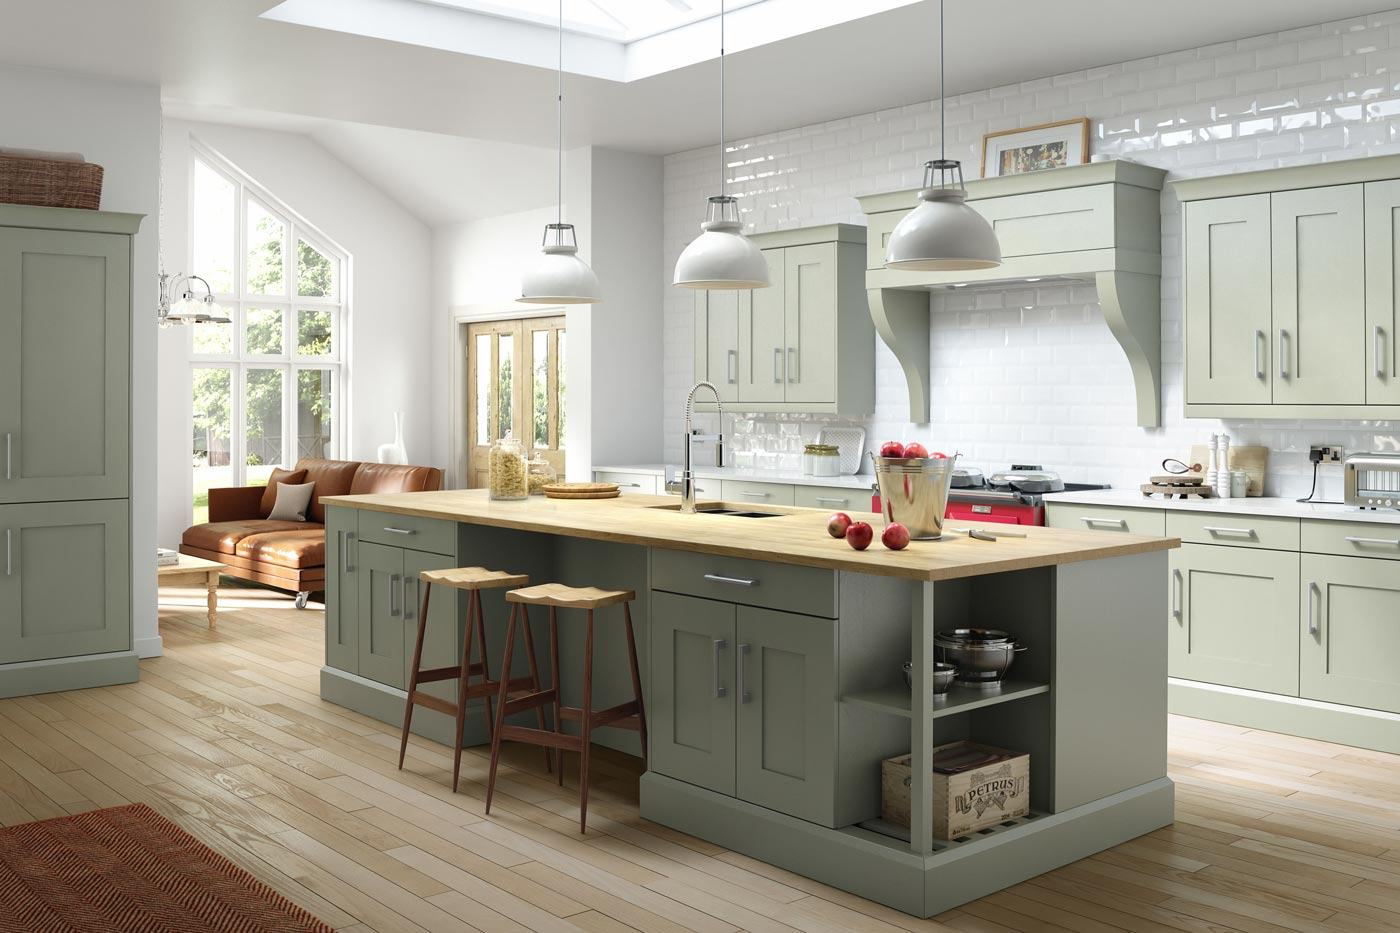 Kitchens Leicester Bespoke Kitchens Leicestershire